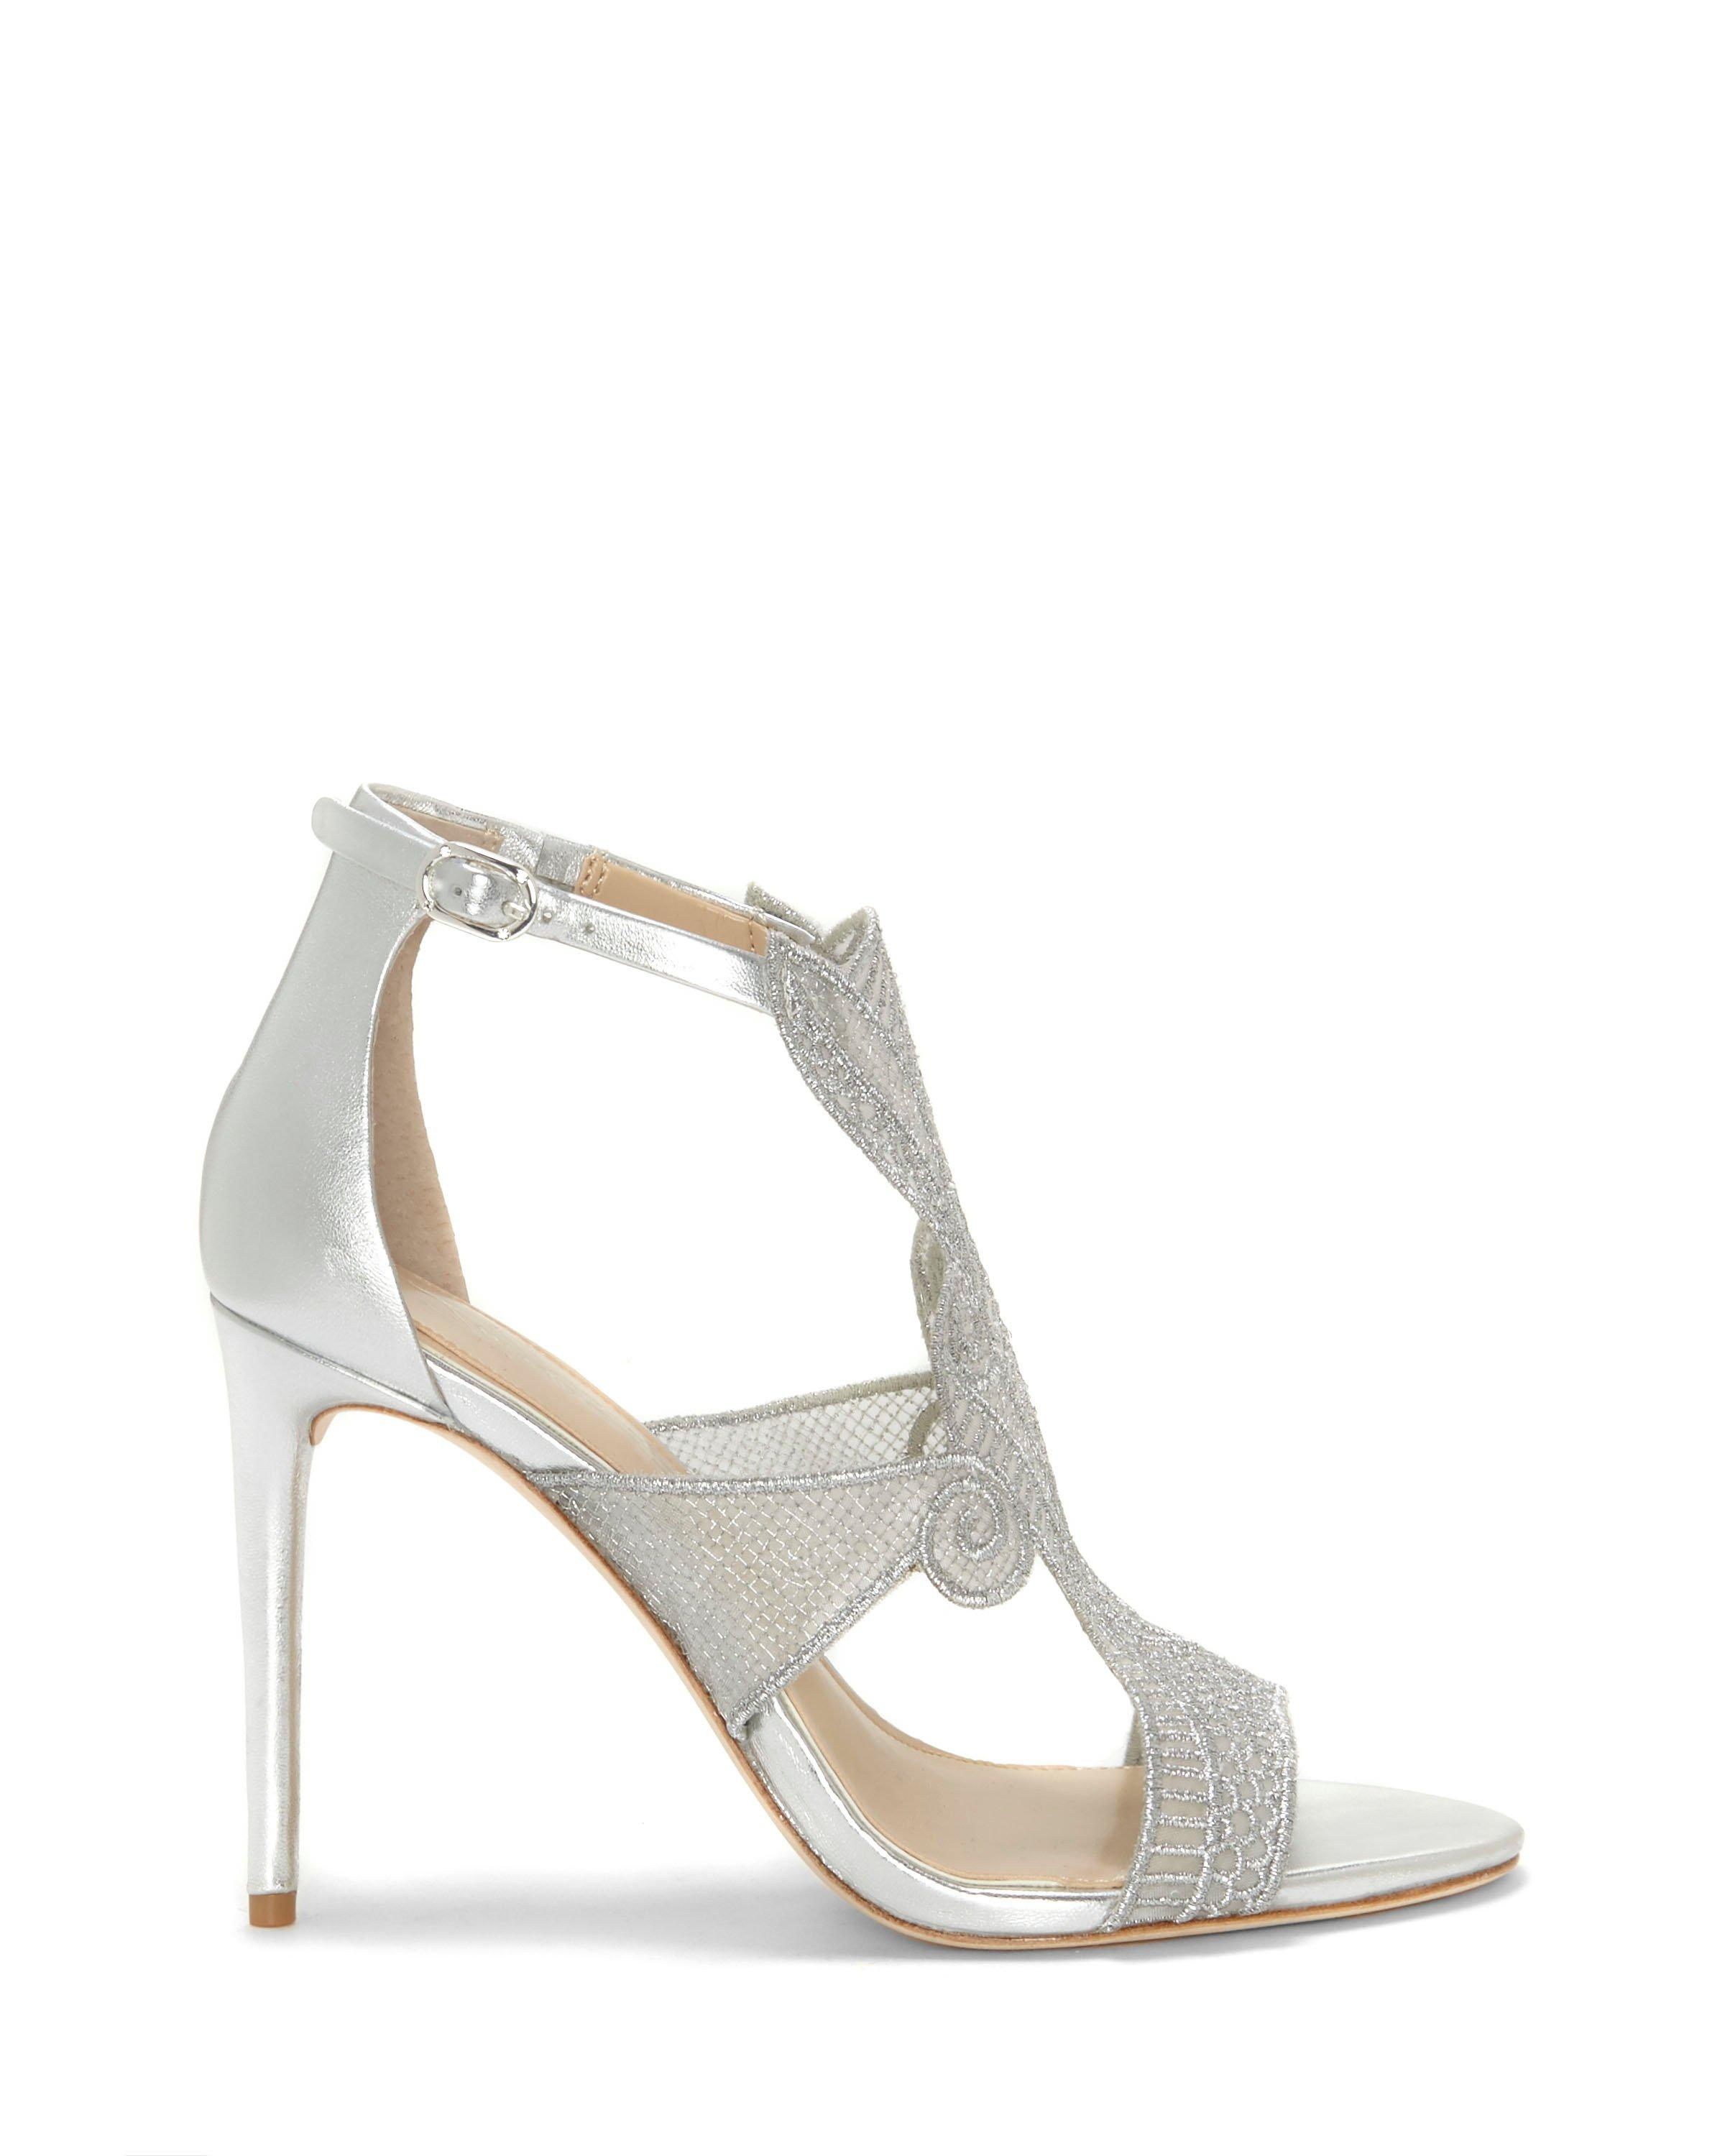 Vince Camuto Imagine by Vince Camuto Rashi Embroidery Silky Mesh Dress Sandals 731Qm